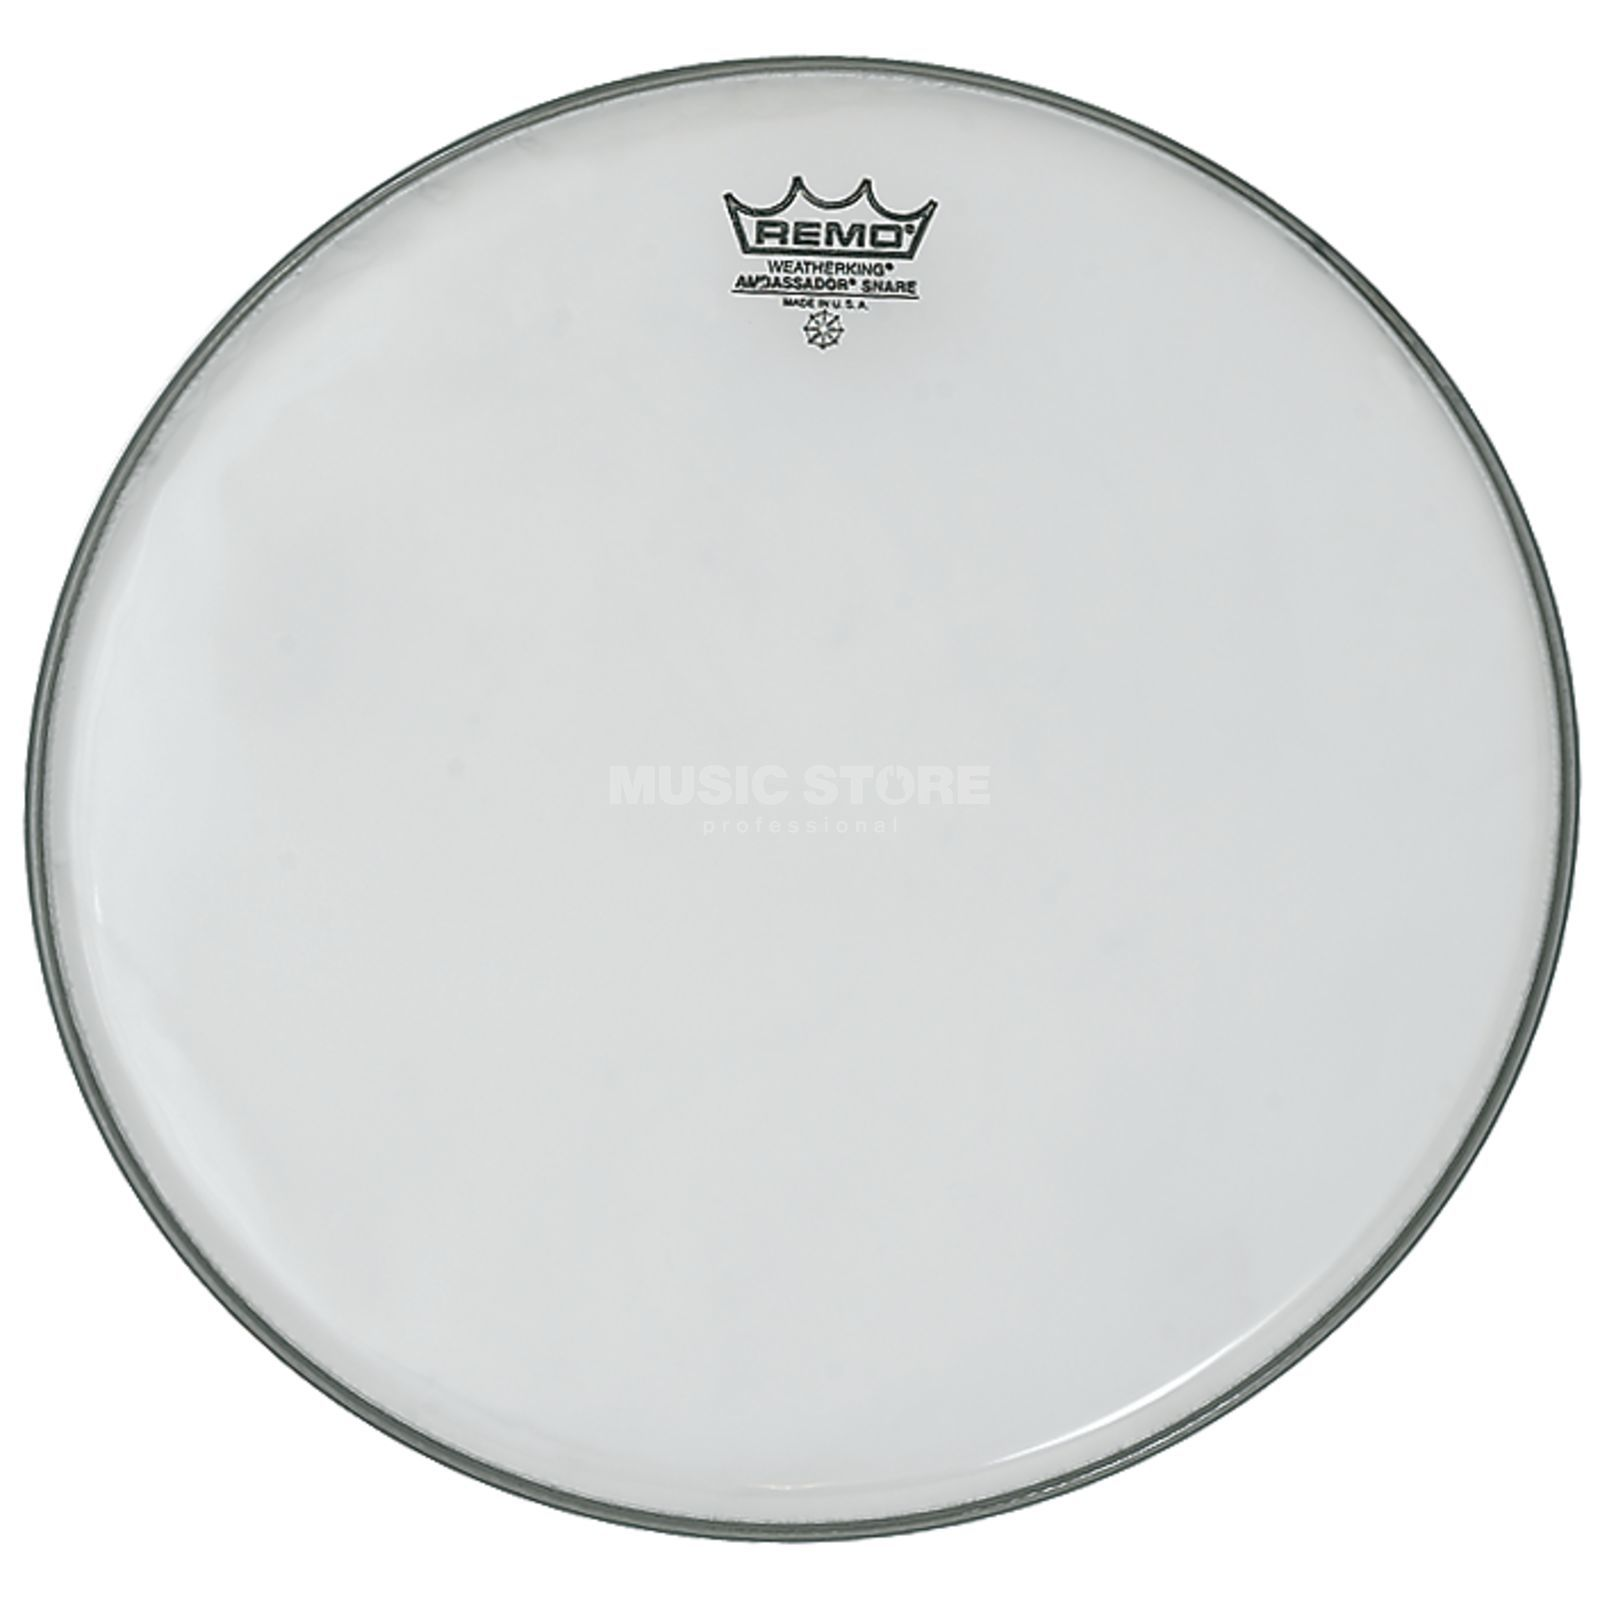 "Remo Ambassador Hazy 12"", clear, Snare Reso Product Image"